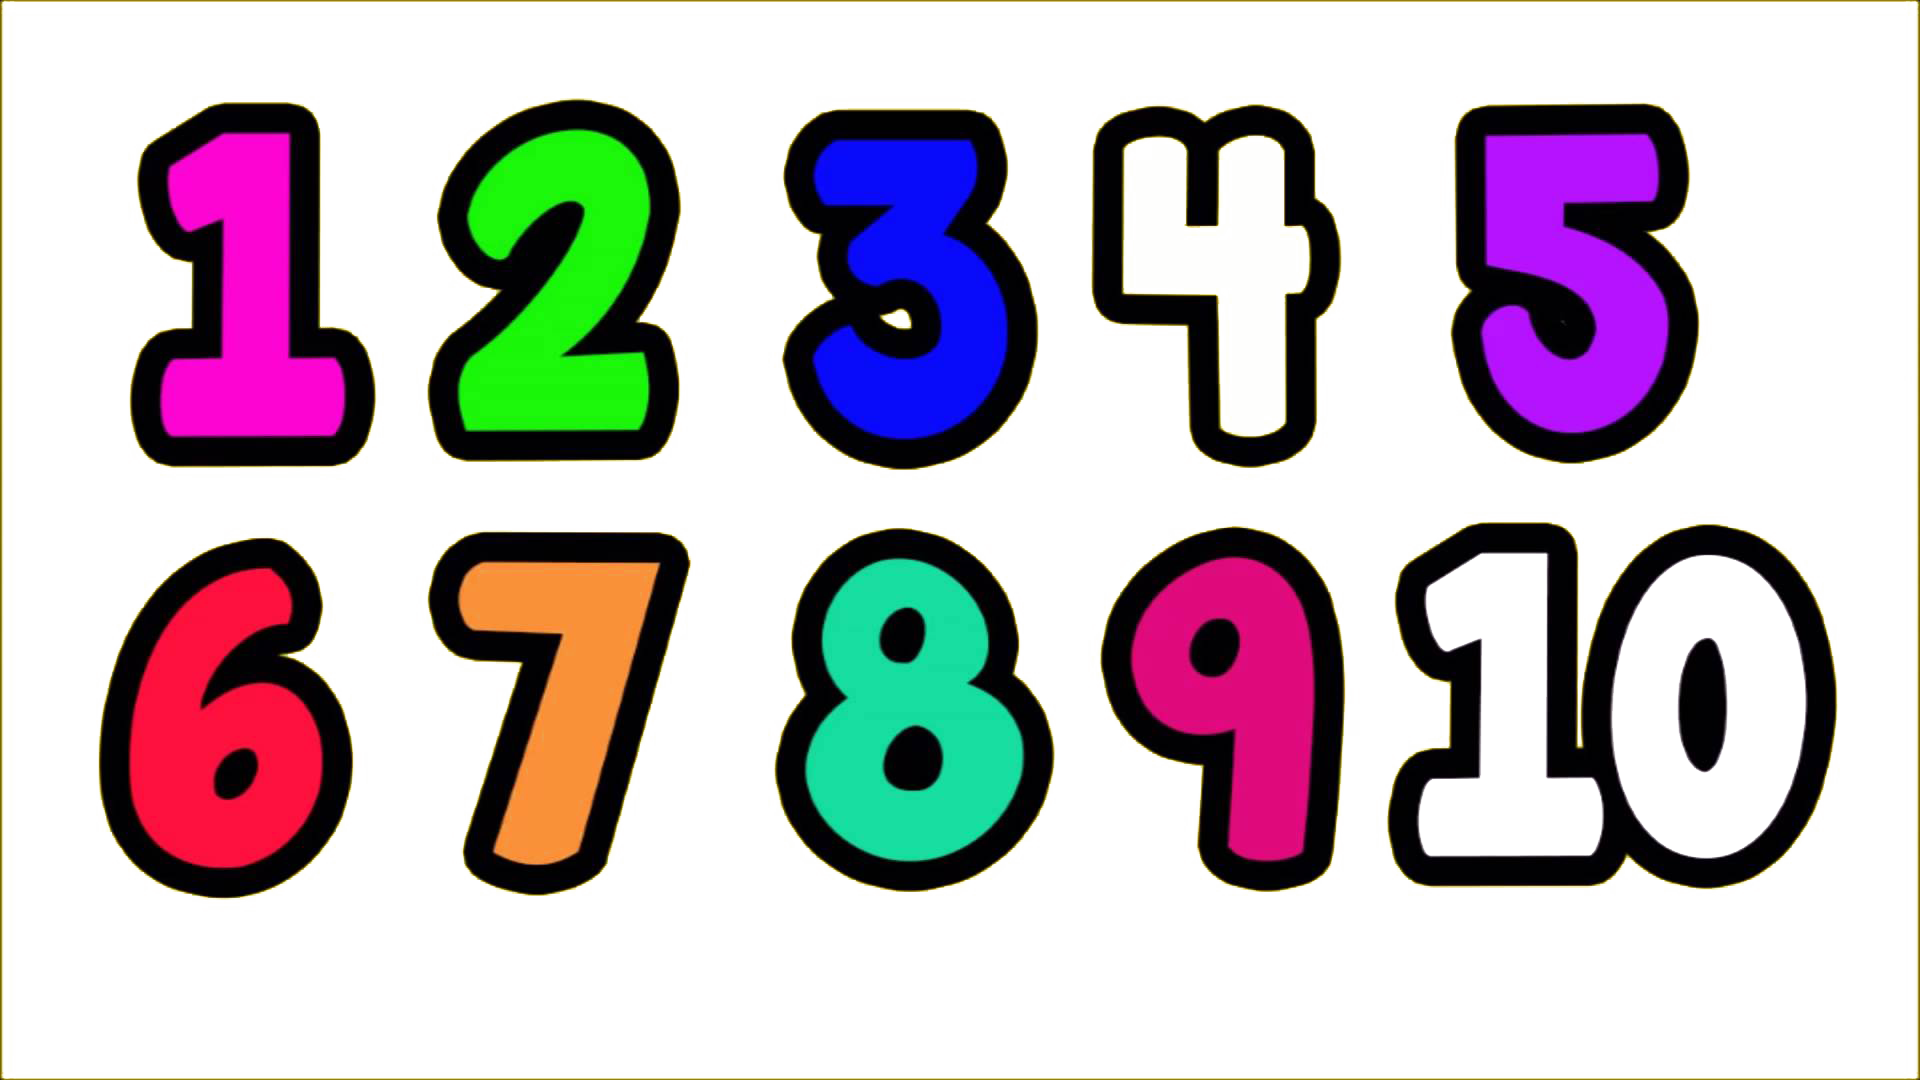 1 To 10 Number Transparent PNG